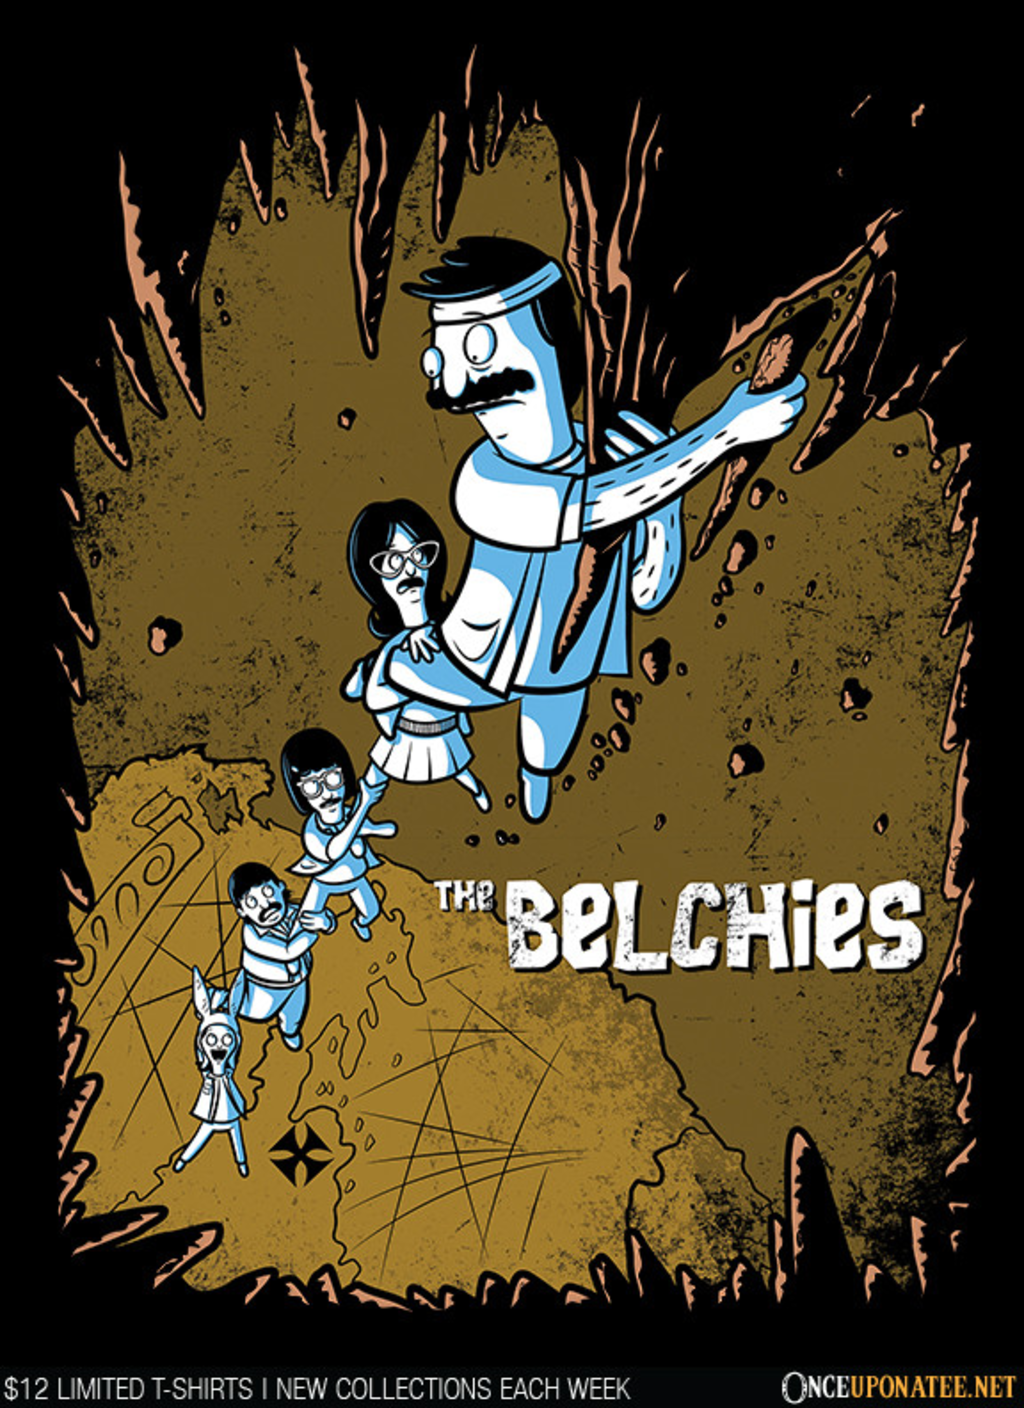 Once Upon a Tee: The Belchies